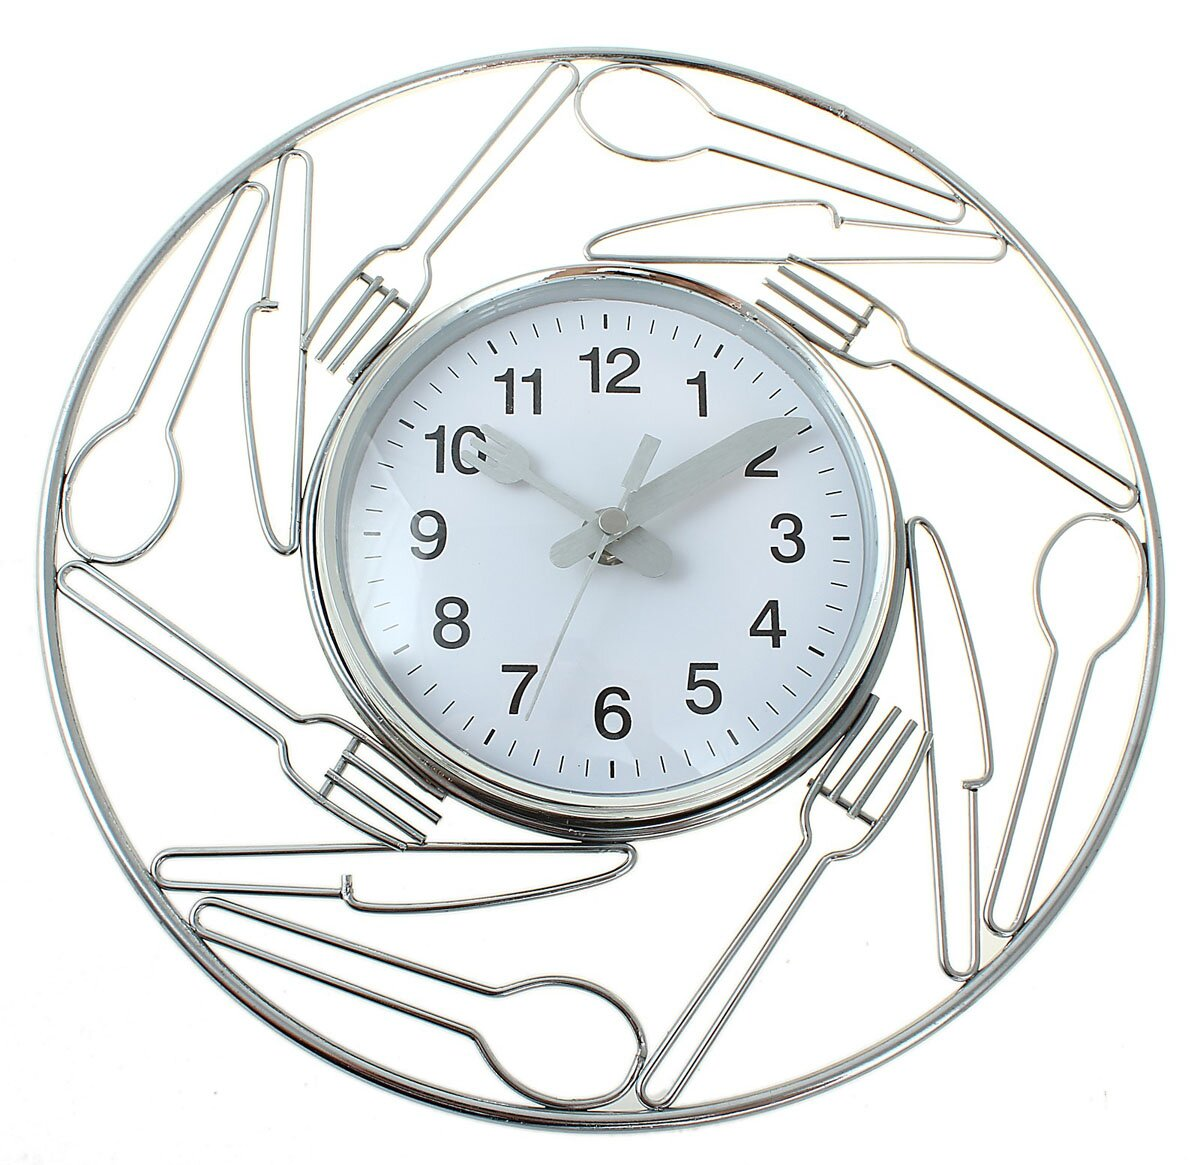 Fabulous Beautiful Kitchen Wall Clocks 1200 x 1165 · 243 kB · jpeg